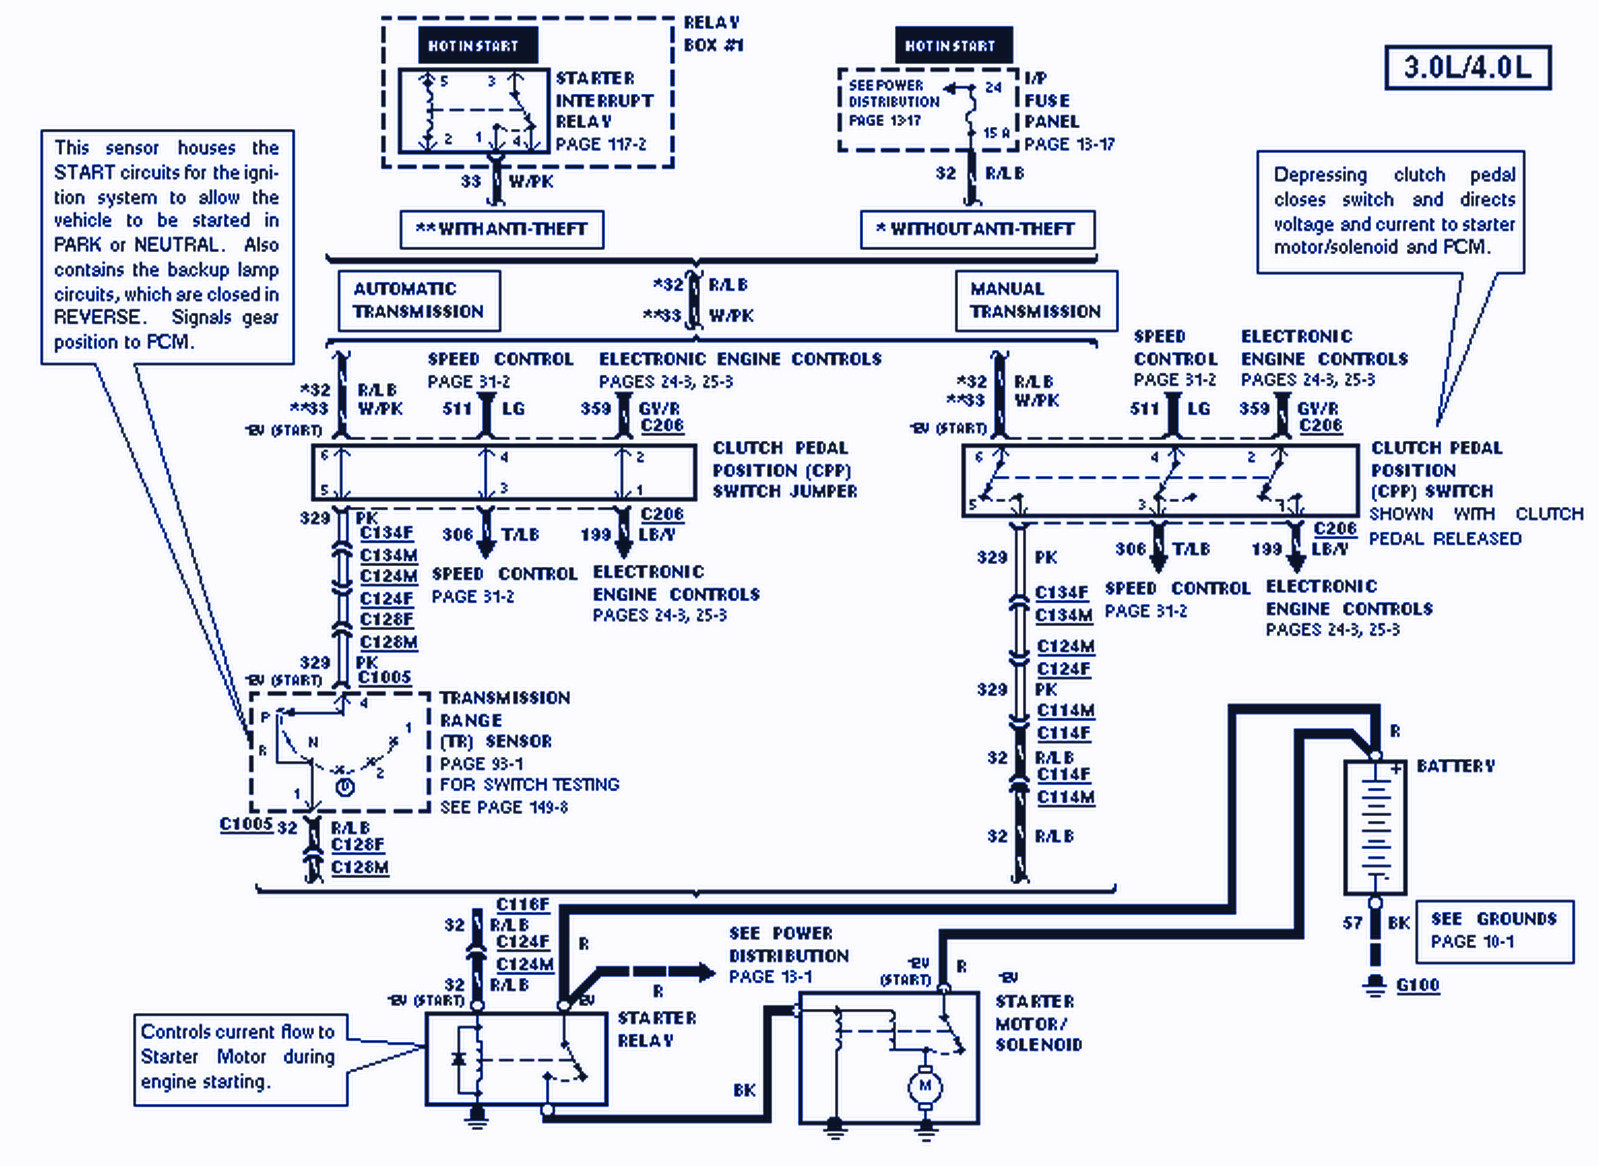 1995 Isuzu Pickup Radio Wiring Diagram: 1995 Isuzu Pickup Wiring Diagram -  efcaviation.com